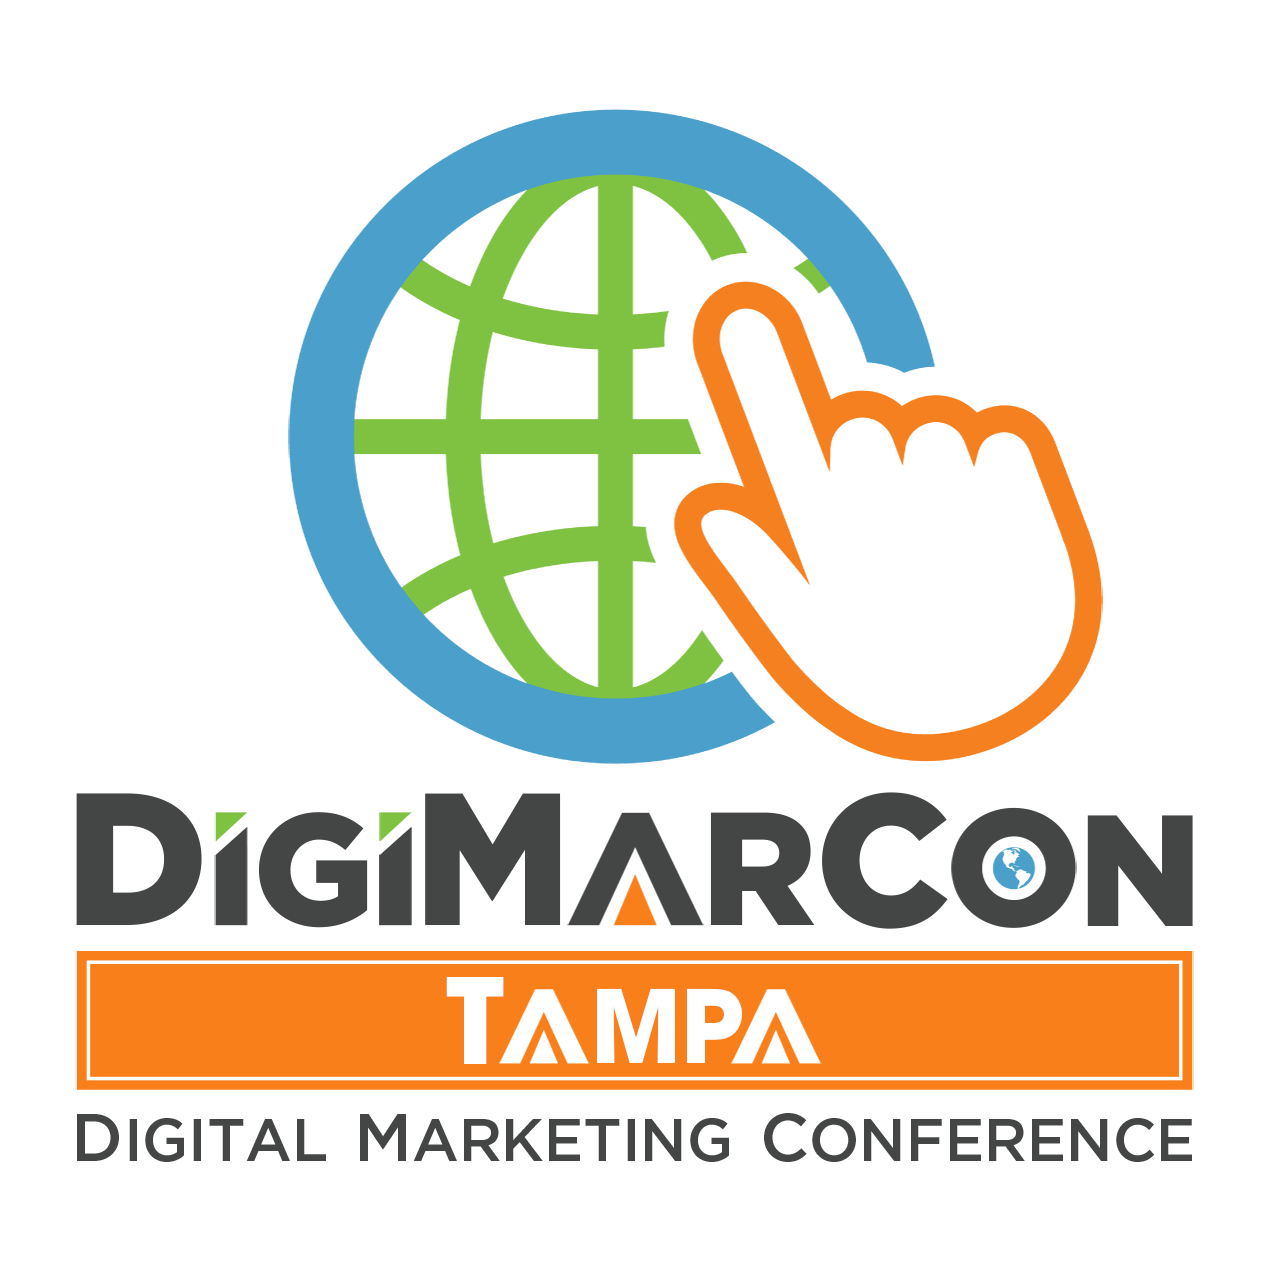 Tampa Digital Marketing, Media & Advertising Conference